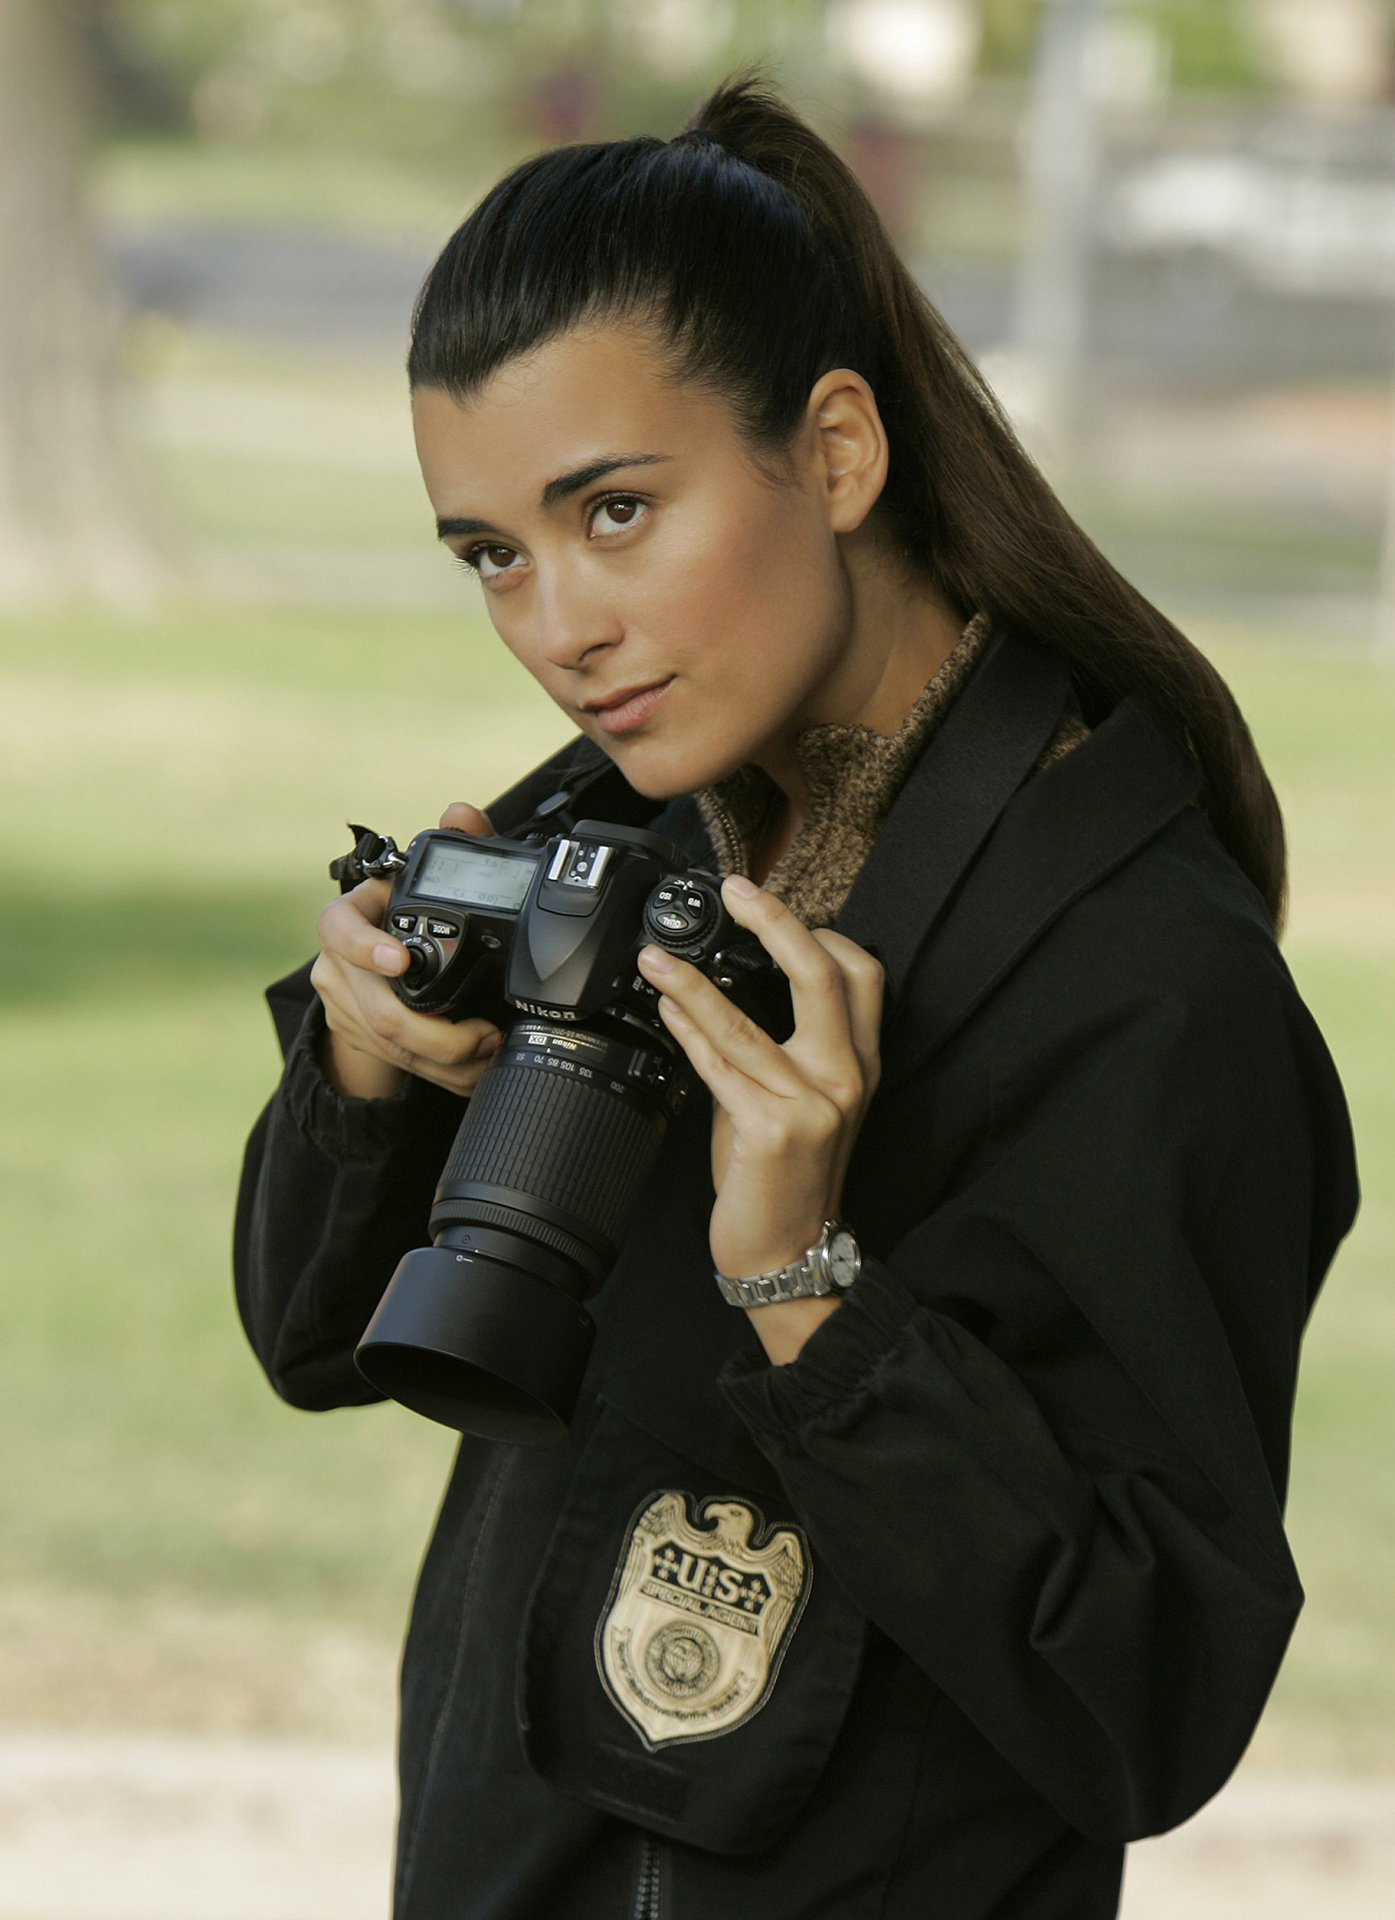 actress cote de pablo who plays agent ziva davis will leave the show